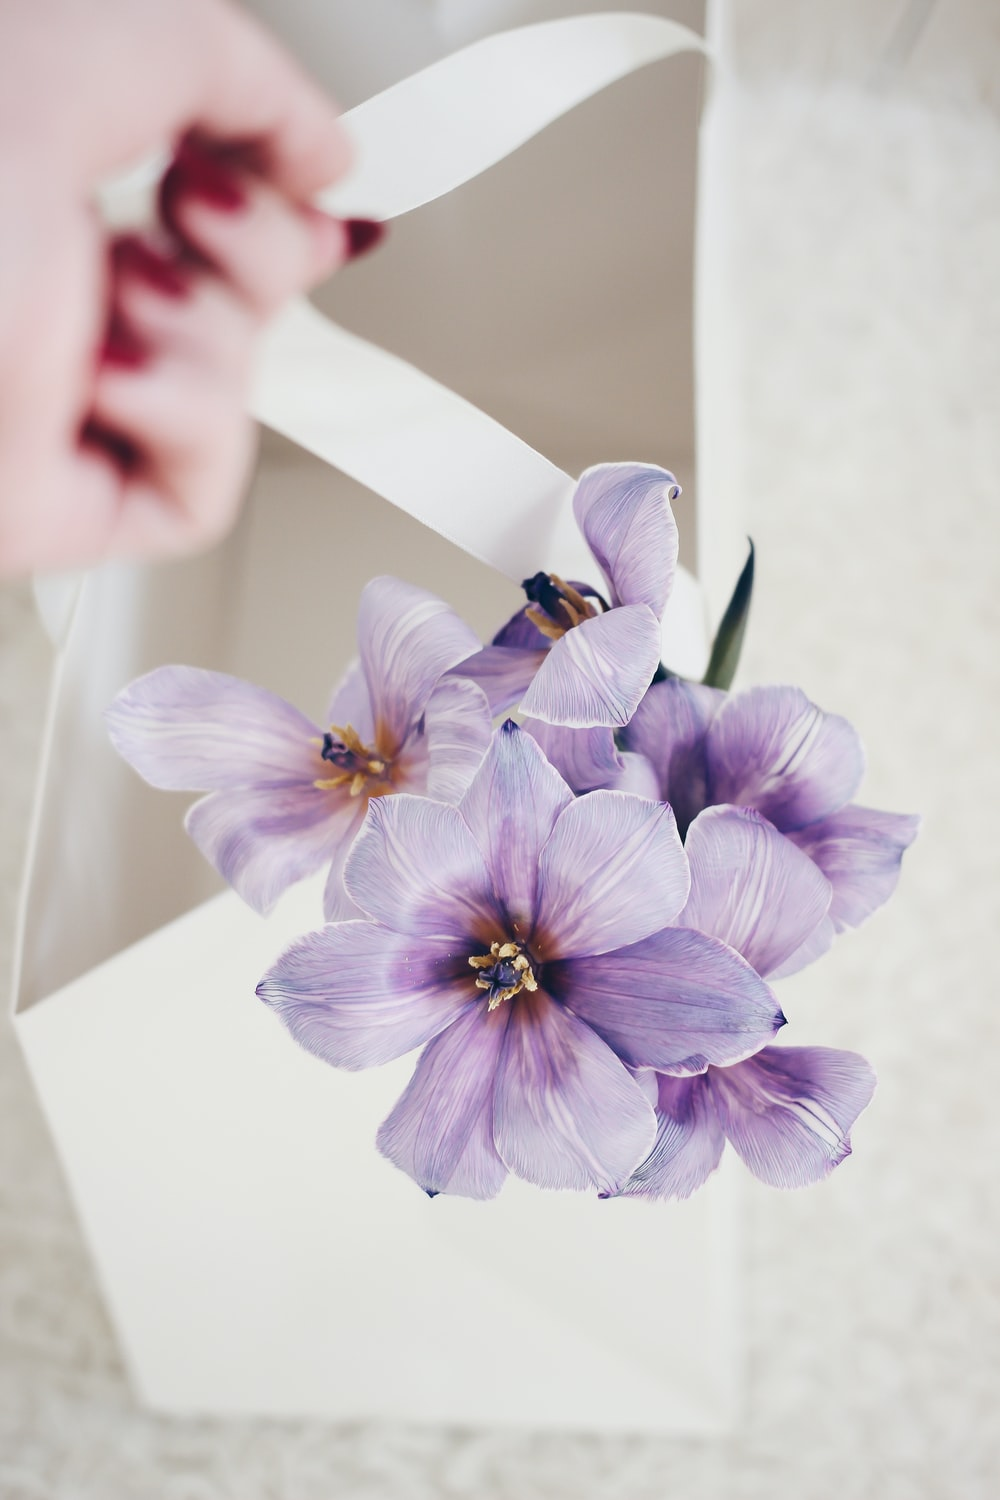 purple and white moth orchid in close up photography